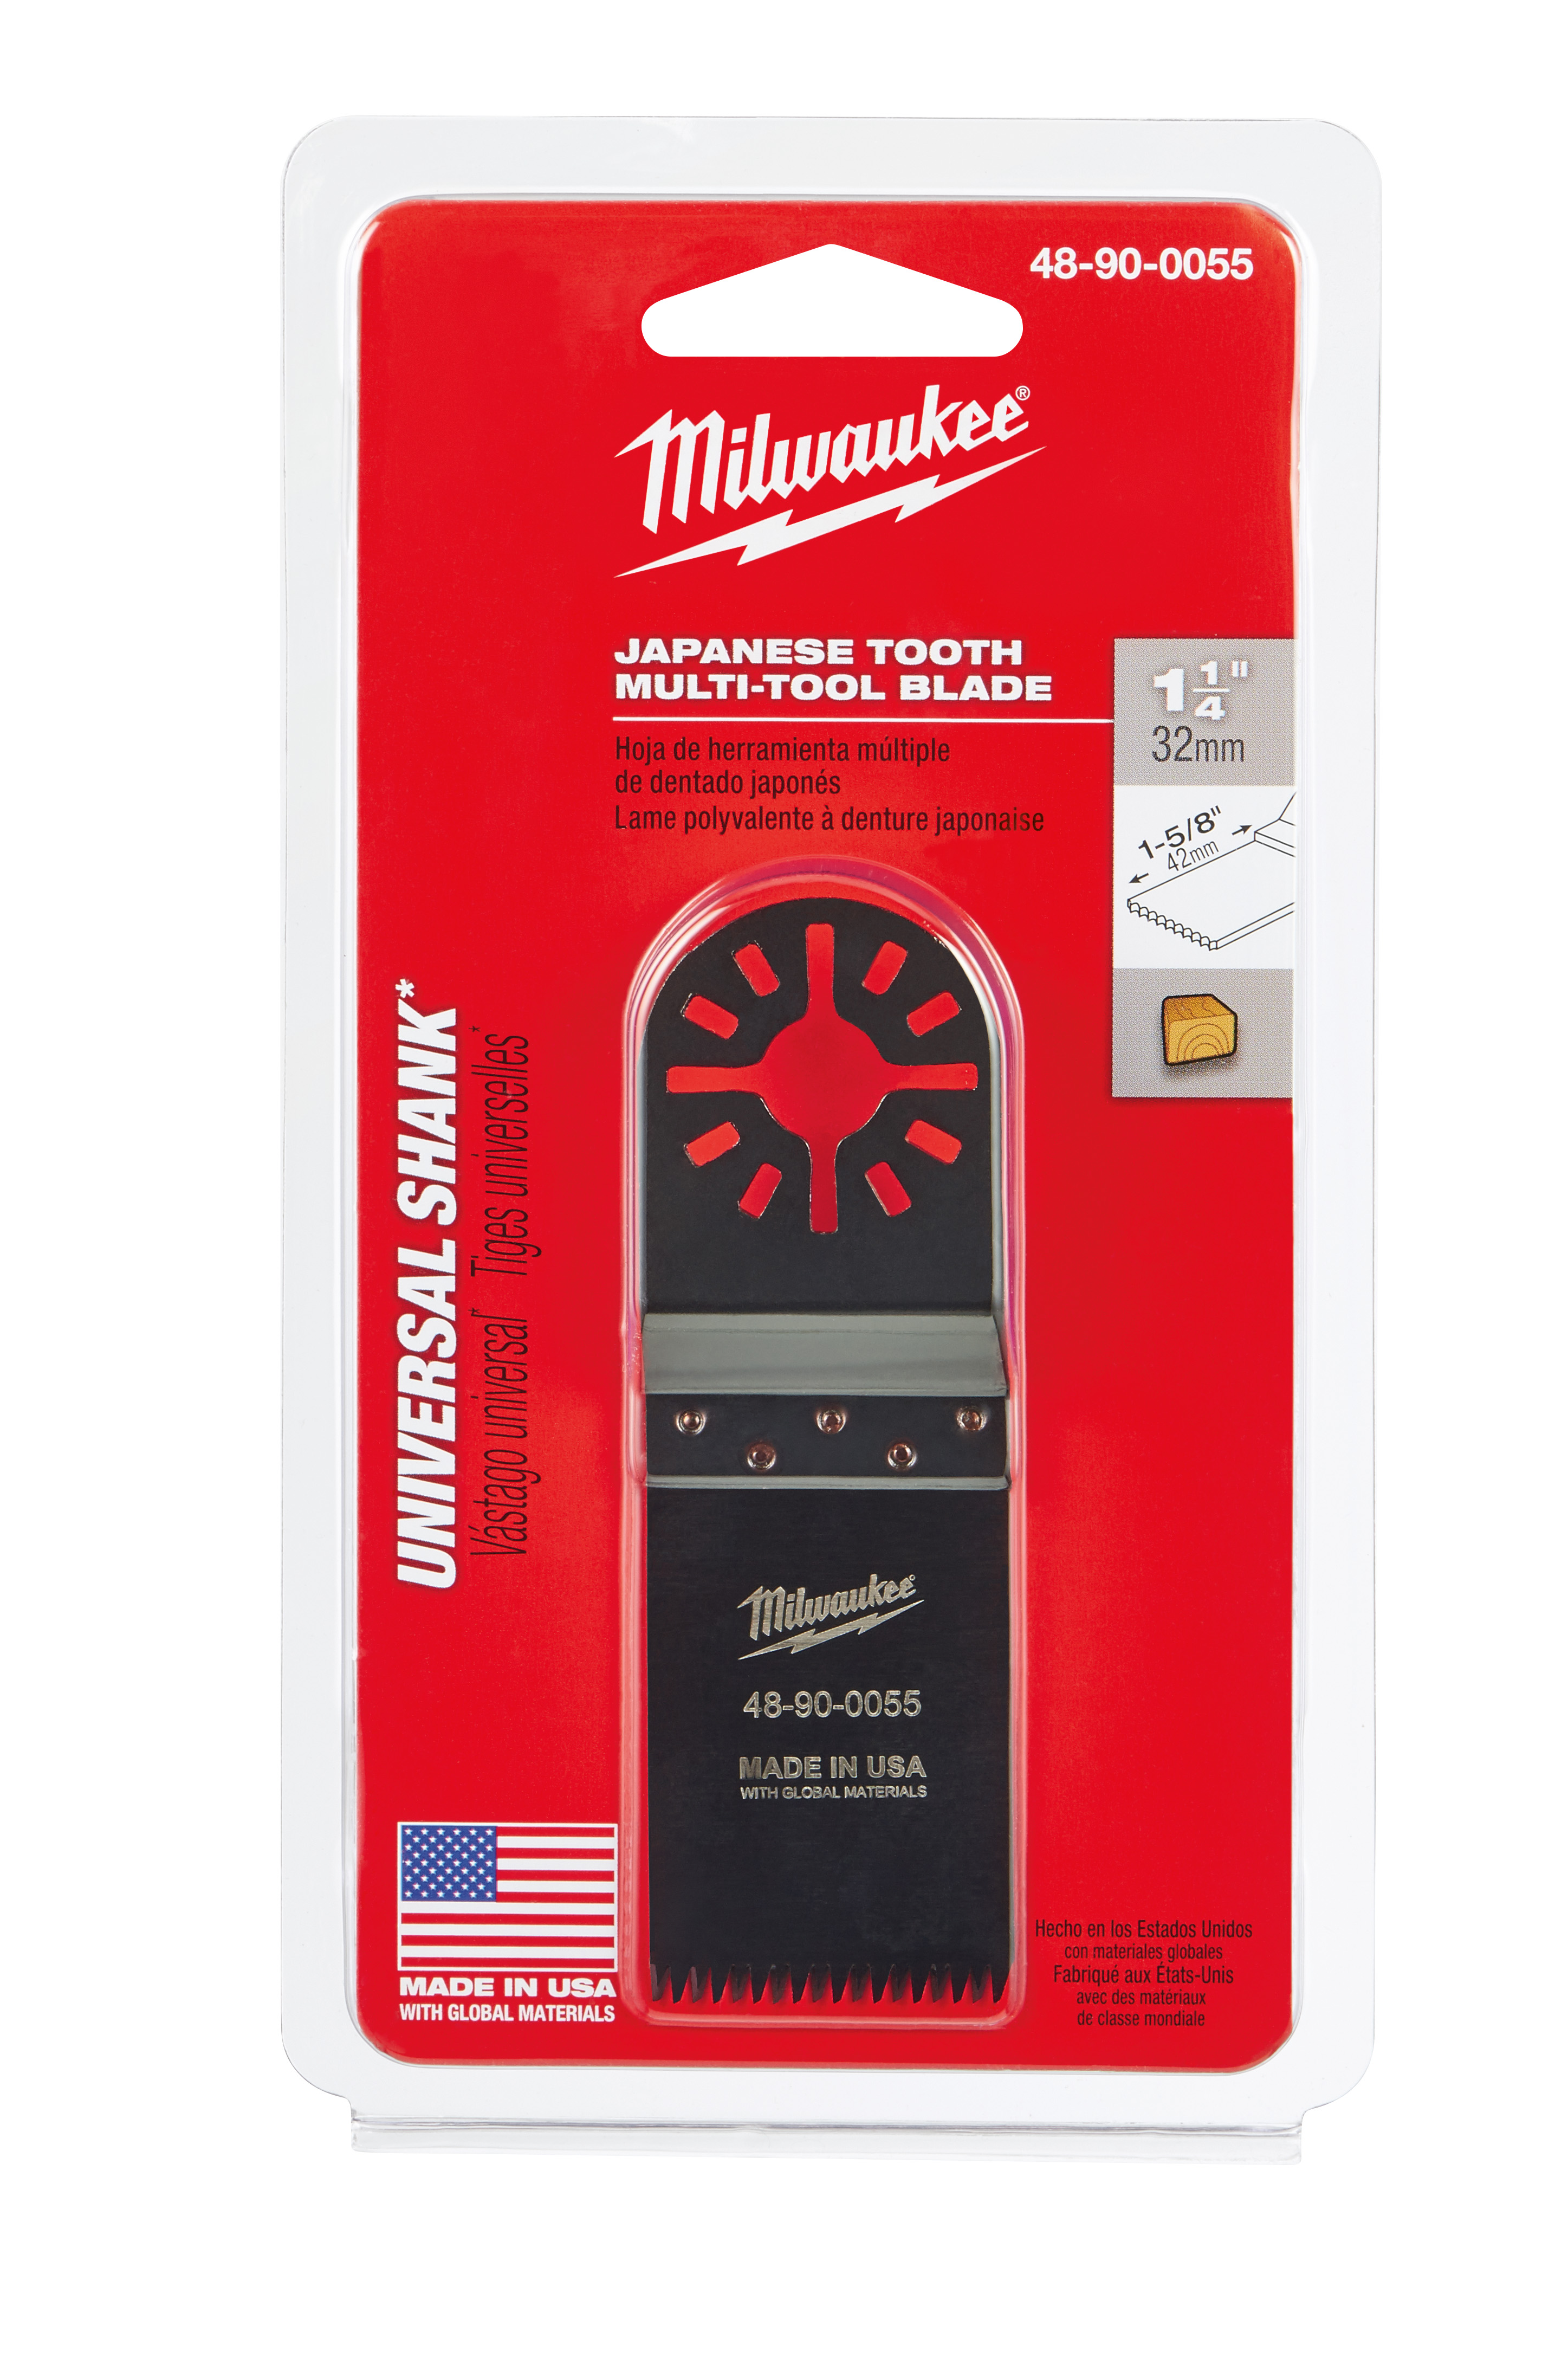 Milwaukee® 48-90-0055 Multi-Tool Blade, For Use With Oscillating Tool, 1-1/4 in Dia Cutting, High Carbon Steel